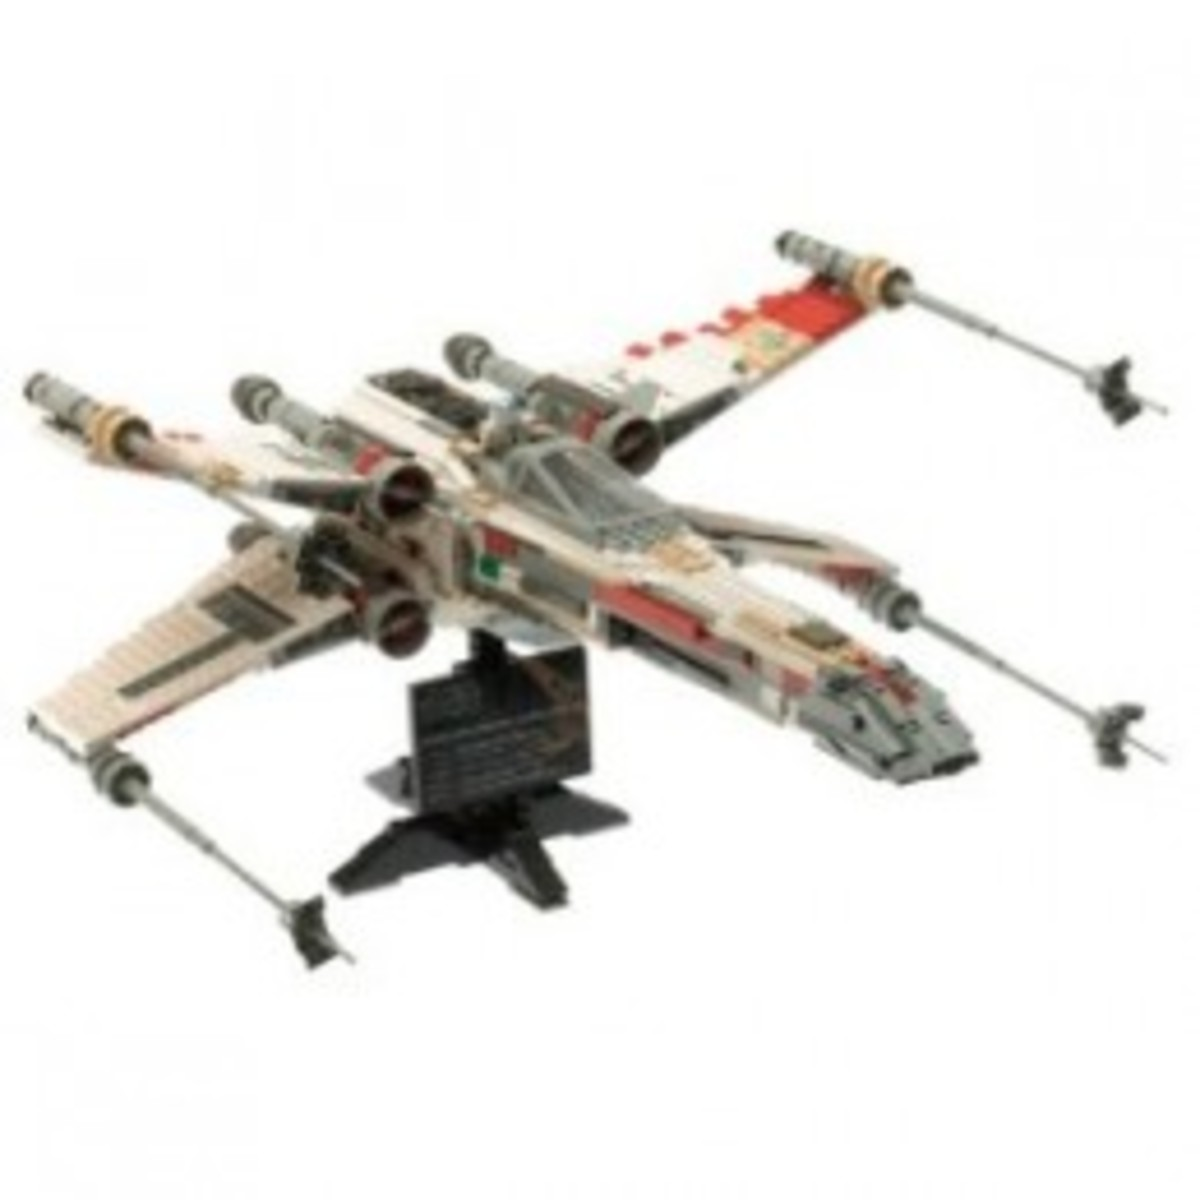 Lego Star Wars X-Wing Fighter 7191 Assembled